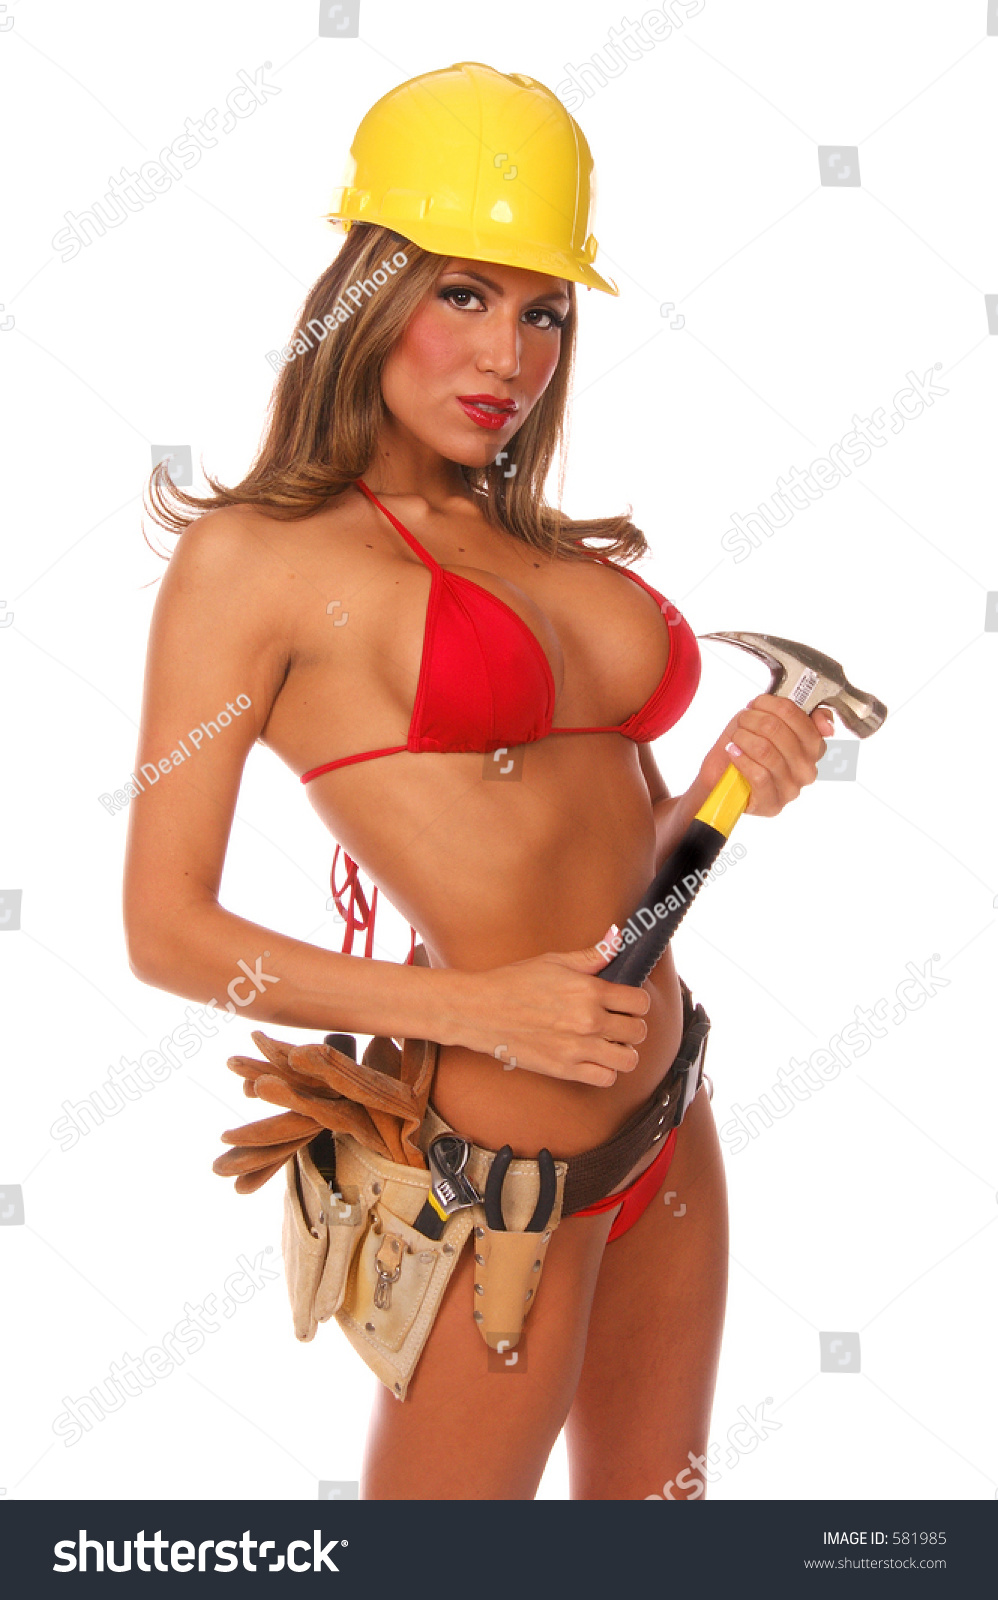 Sexy latino female construction worker in bikini, hardhat and tool belt with a hammer in her hands #581985